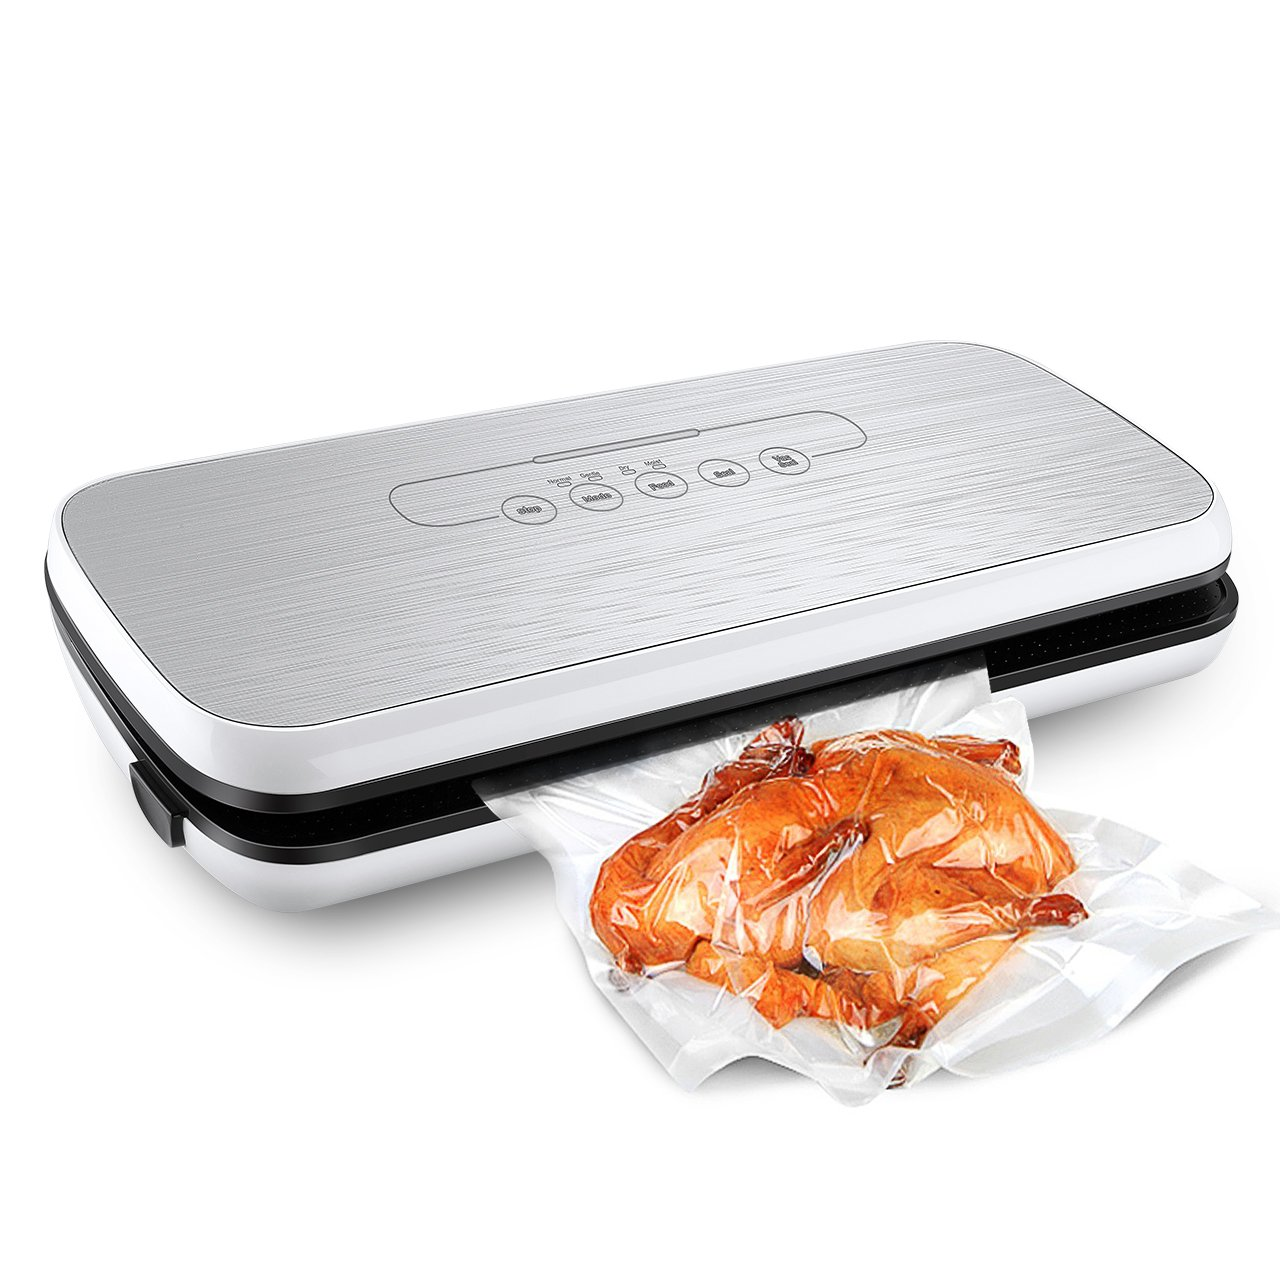 HoLife Food Saver Vacuum Sealer, Compact Vacuum Sealing System with Dry/Moist Mode and Simple Quick Operation, Including Food Grade Vacuum Bags, Rolls and Hose (Silver ) LivSense